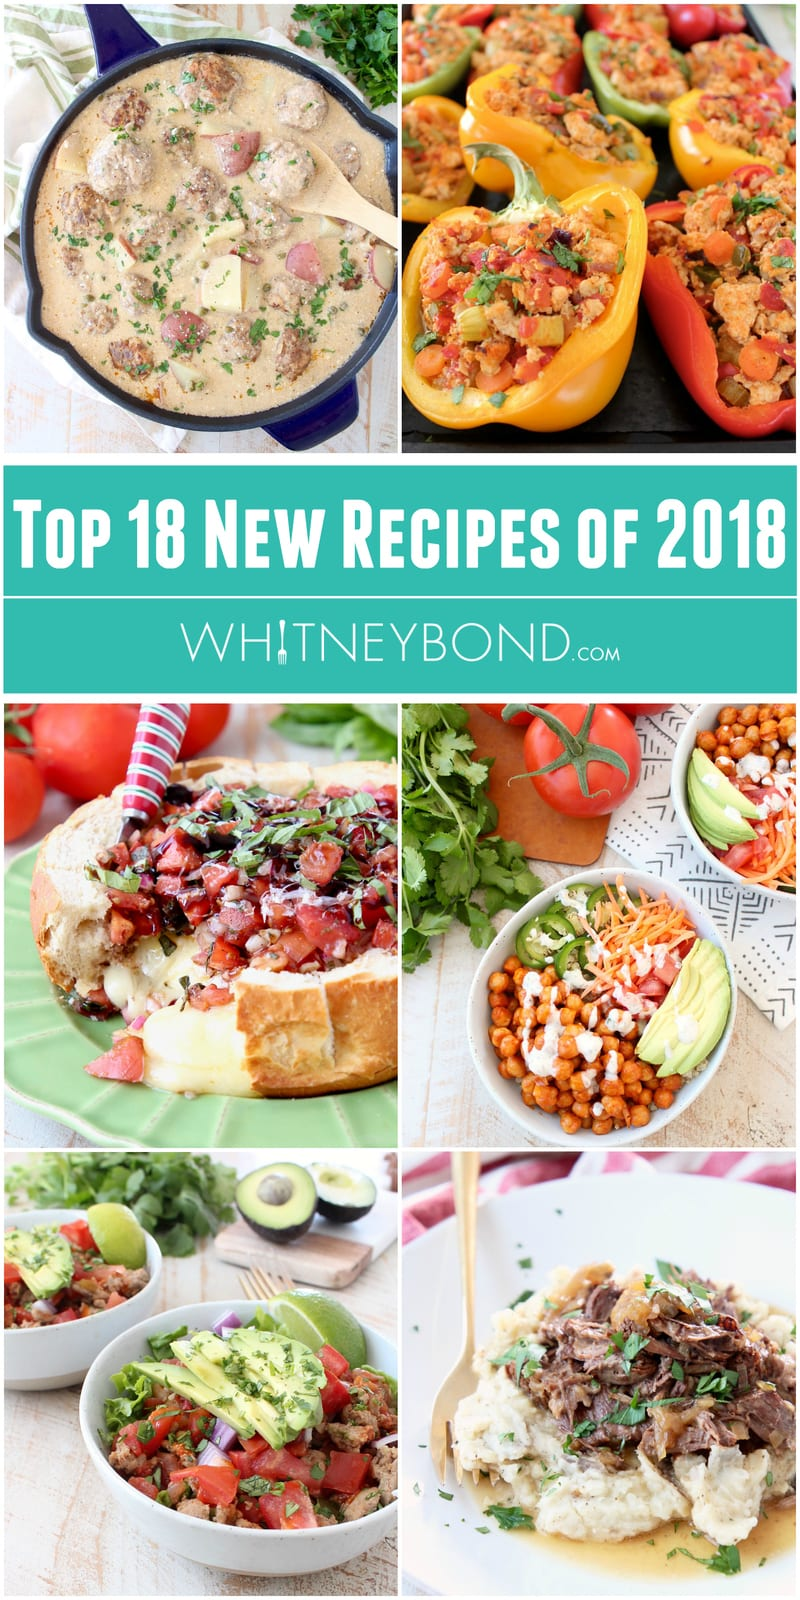 """Collage of 6 images of recipes with text overlay """"top 18 new recipes of 2018, WhitneyBond.com"""""""